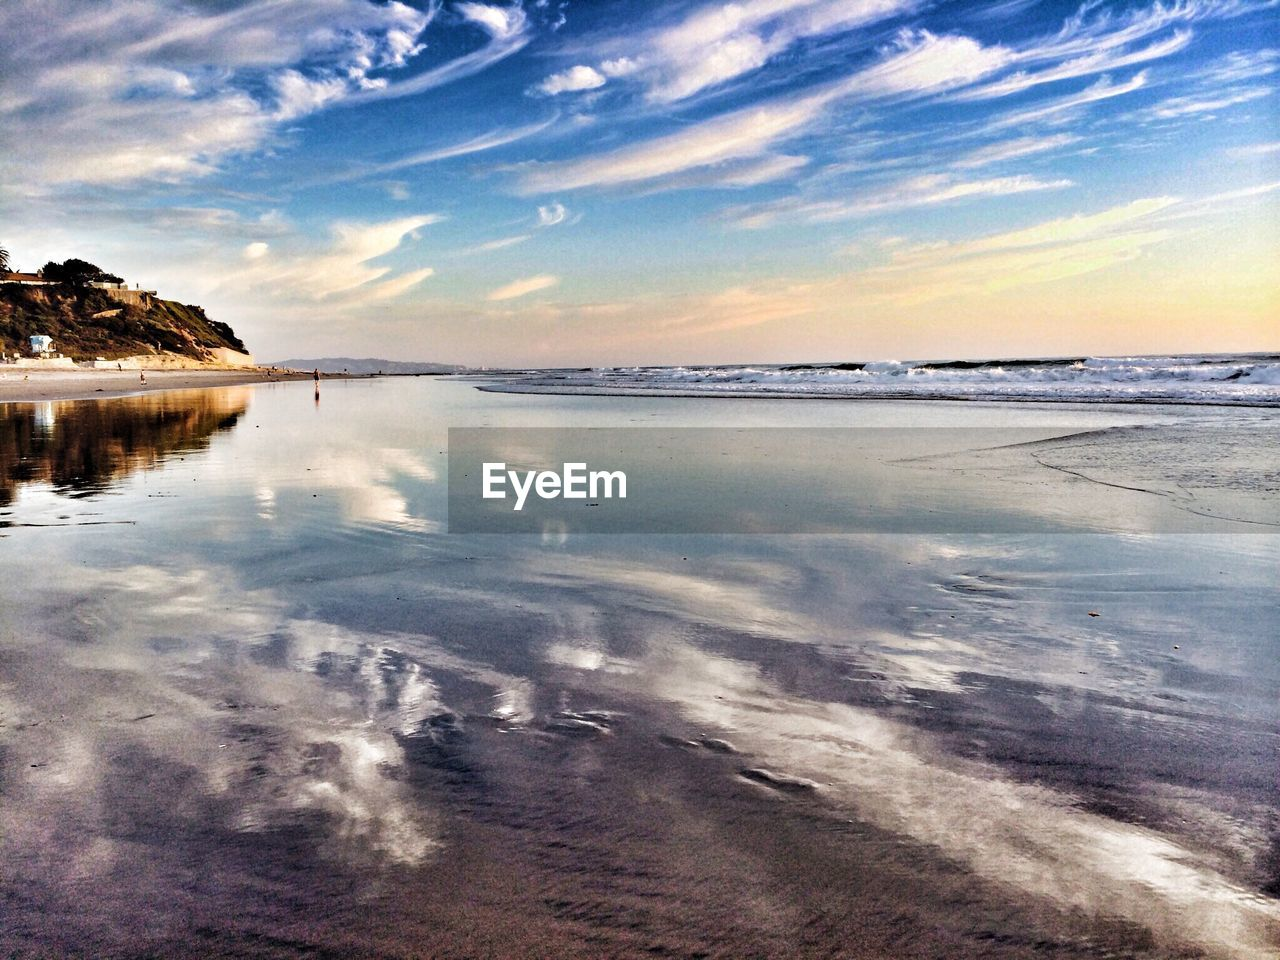 water, nature, sky, scenics, beauty in nature, tranquil scene, tranquility, sea, reflection, sunset, cloud - sky, outdoors, beach, no people, horizon over water, day